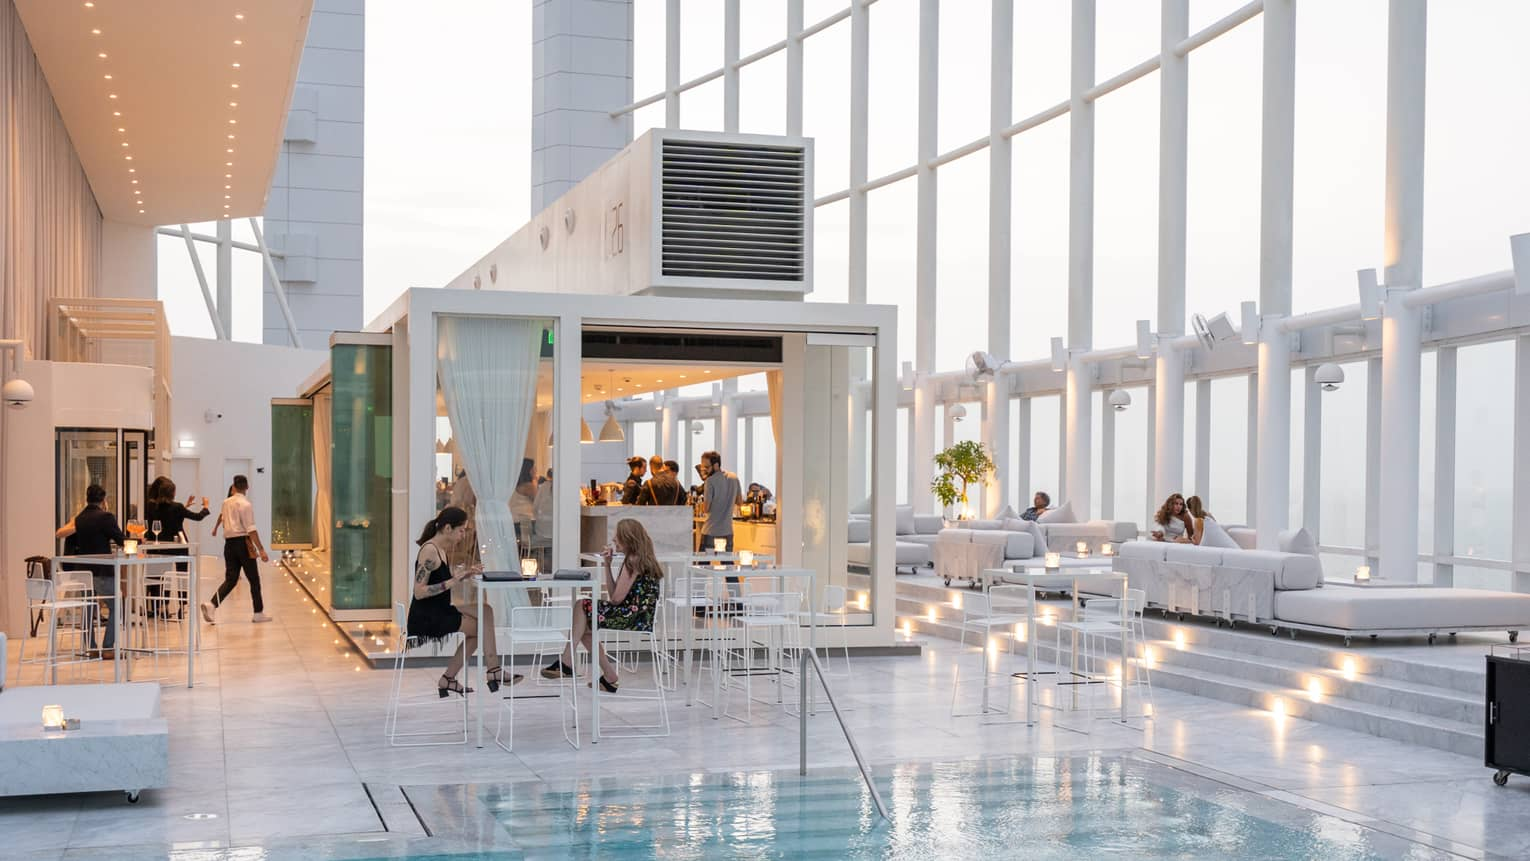 People mingle around a contemporary white bar next to pool